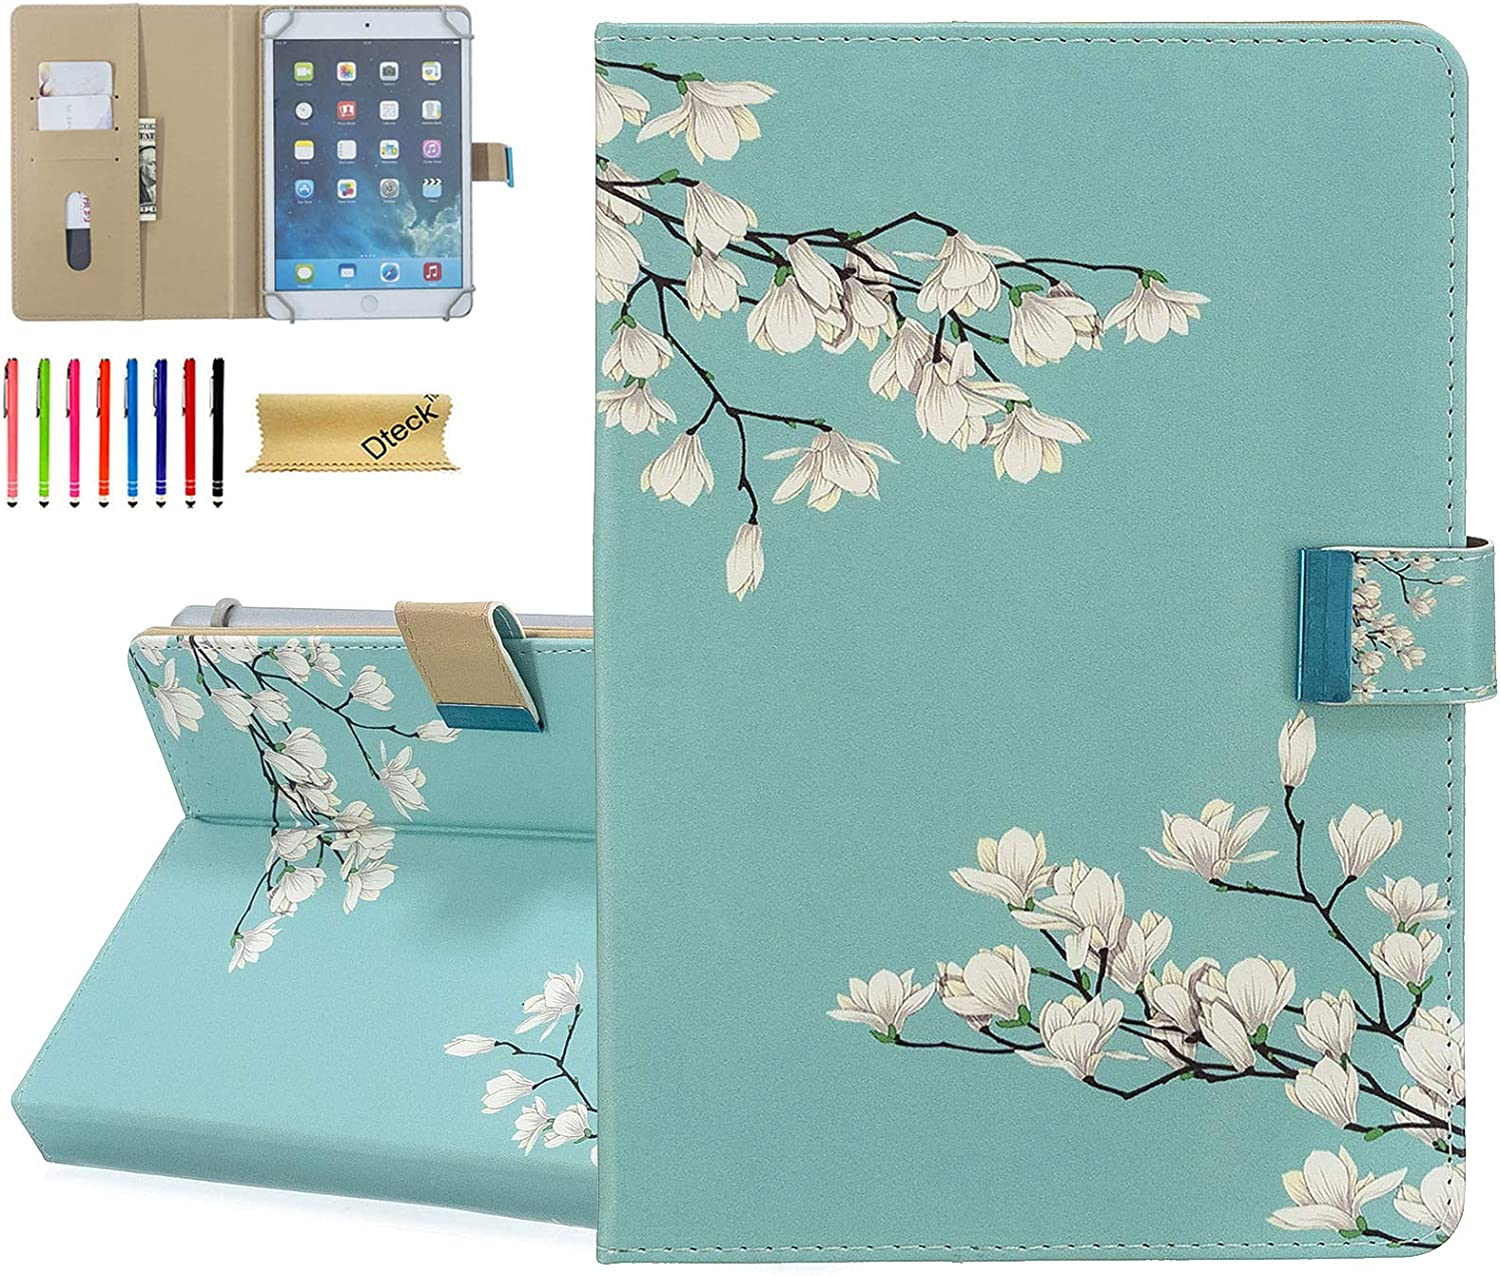 """8.0 Inch Universal Case - Dteck Protective Leather Wallet Flip Cover with Card Slots for Fire 8/ Samsung Tab 8"""" /Lenovo 8.0 /Dragon Touch 8.0 /ASUS ZenPad 8/8.0 Android Tablet (Mint White Flower)"""